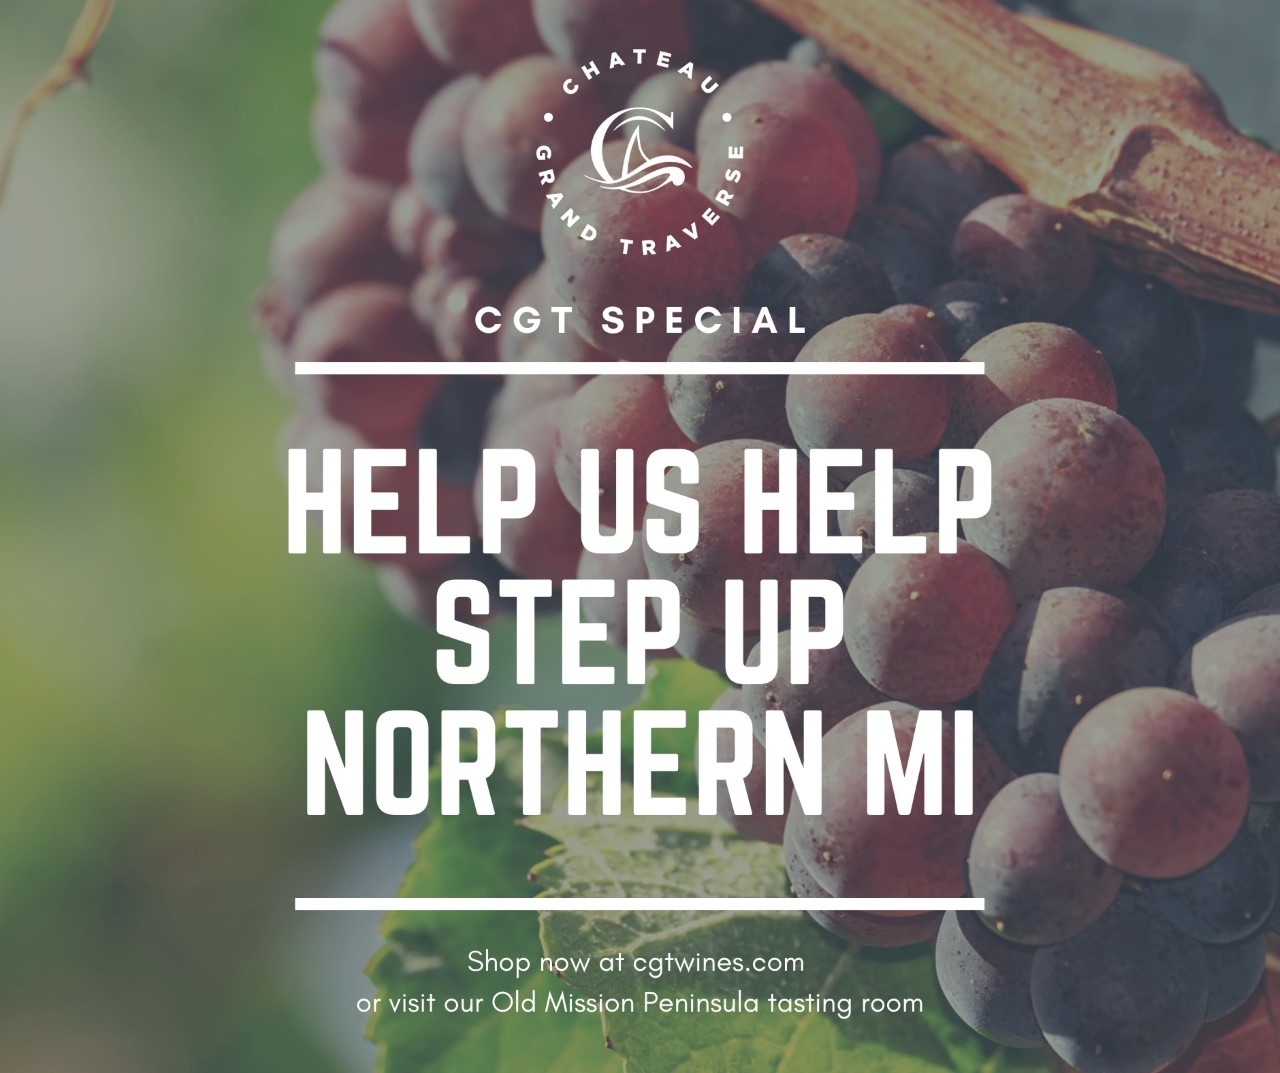 Give $5 to Step Up Northern MI